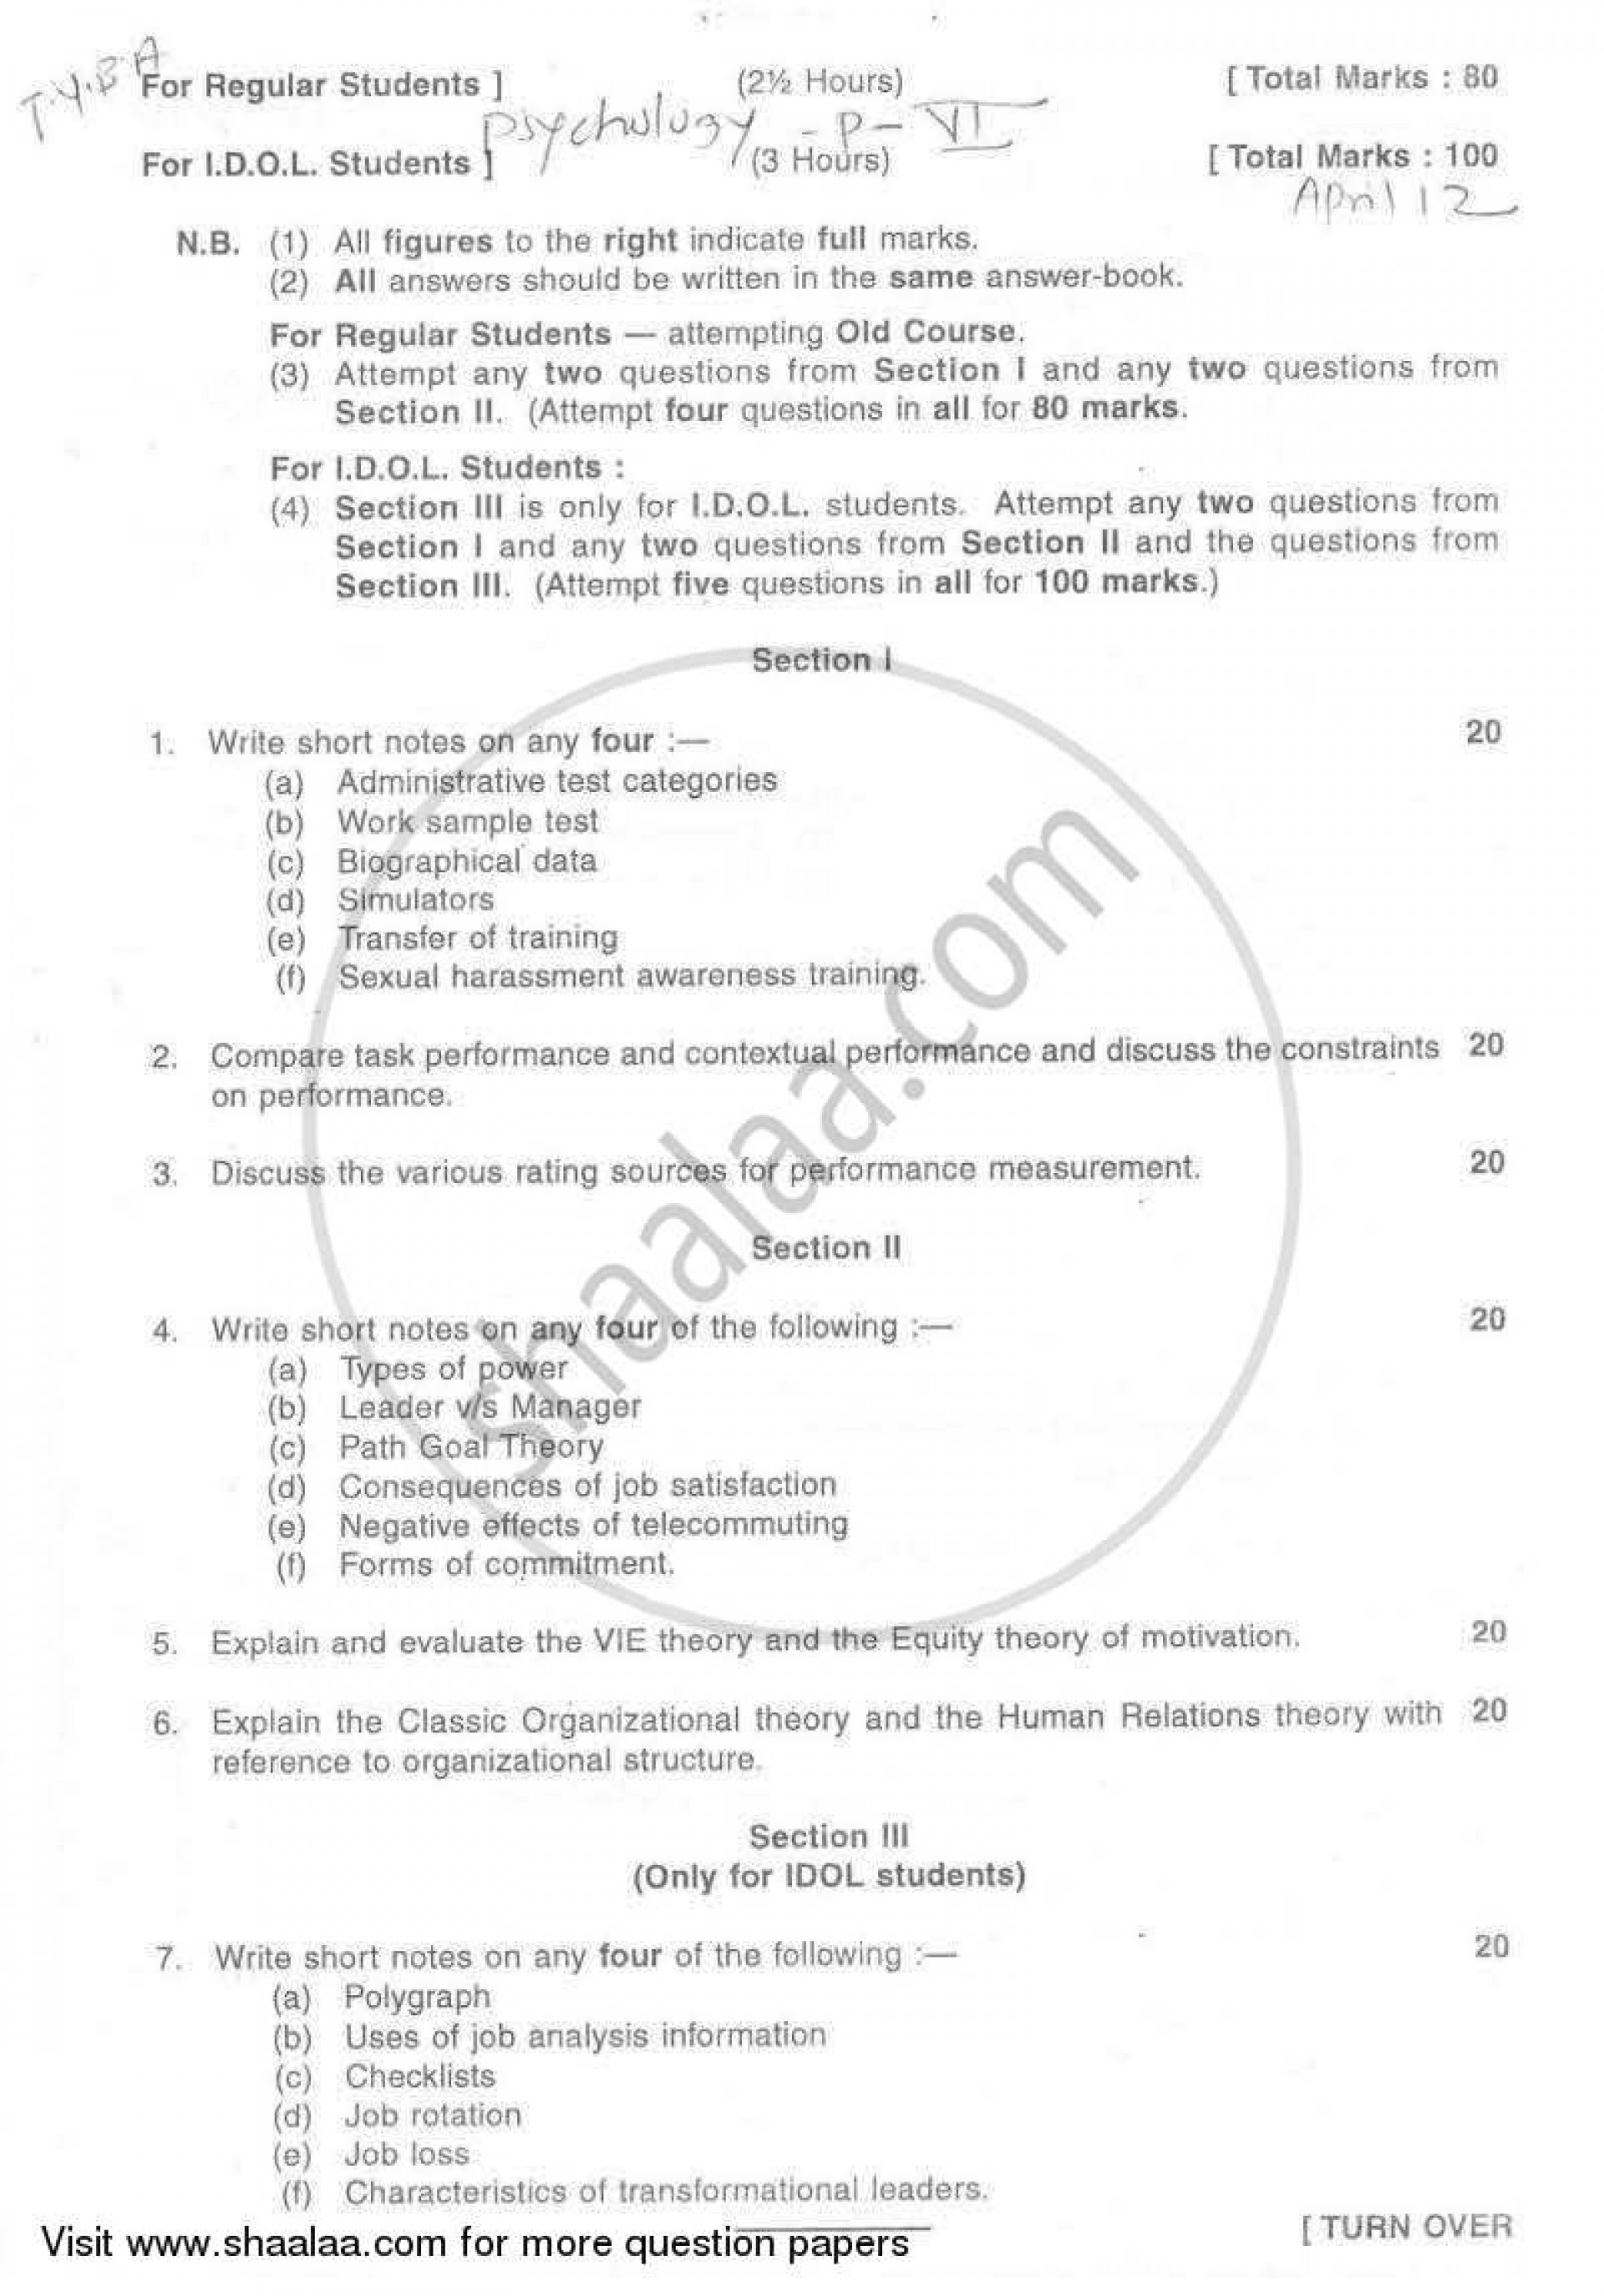 017 Psychologyearch Paper On Dreams University Of Mumbai Bachelor Industrial Organizational T Y Yearly Pattern Semester Tyba 2011 29a03925dfc524f2aa4cb10e4d3da996a Singular Psychology Research Topics Articles 1920